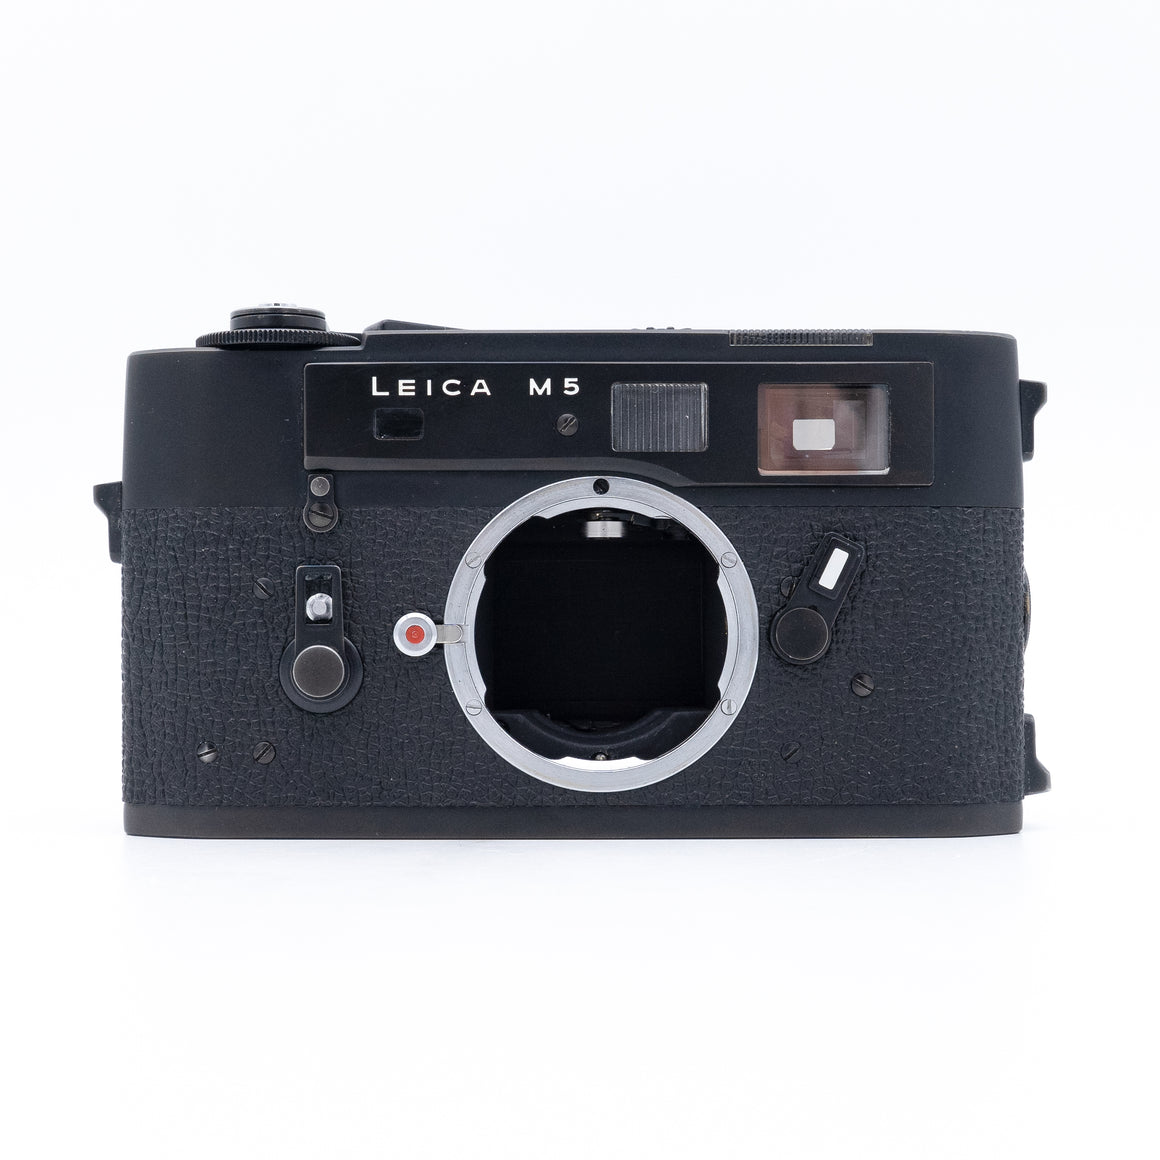 Leica M5 Rangefinder Camera Body Only or with Leica Elmarit-M 28mm f/2.8 Aspherical Lens - Black Lens Kit